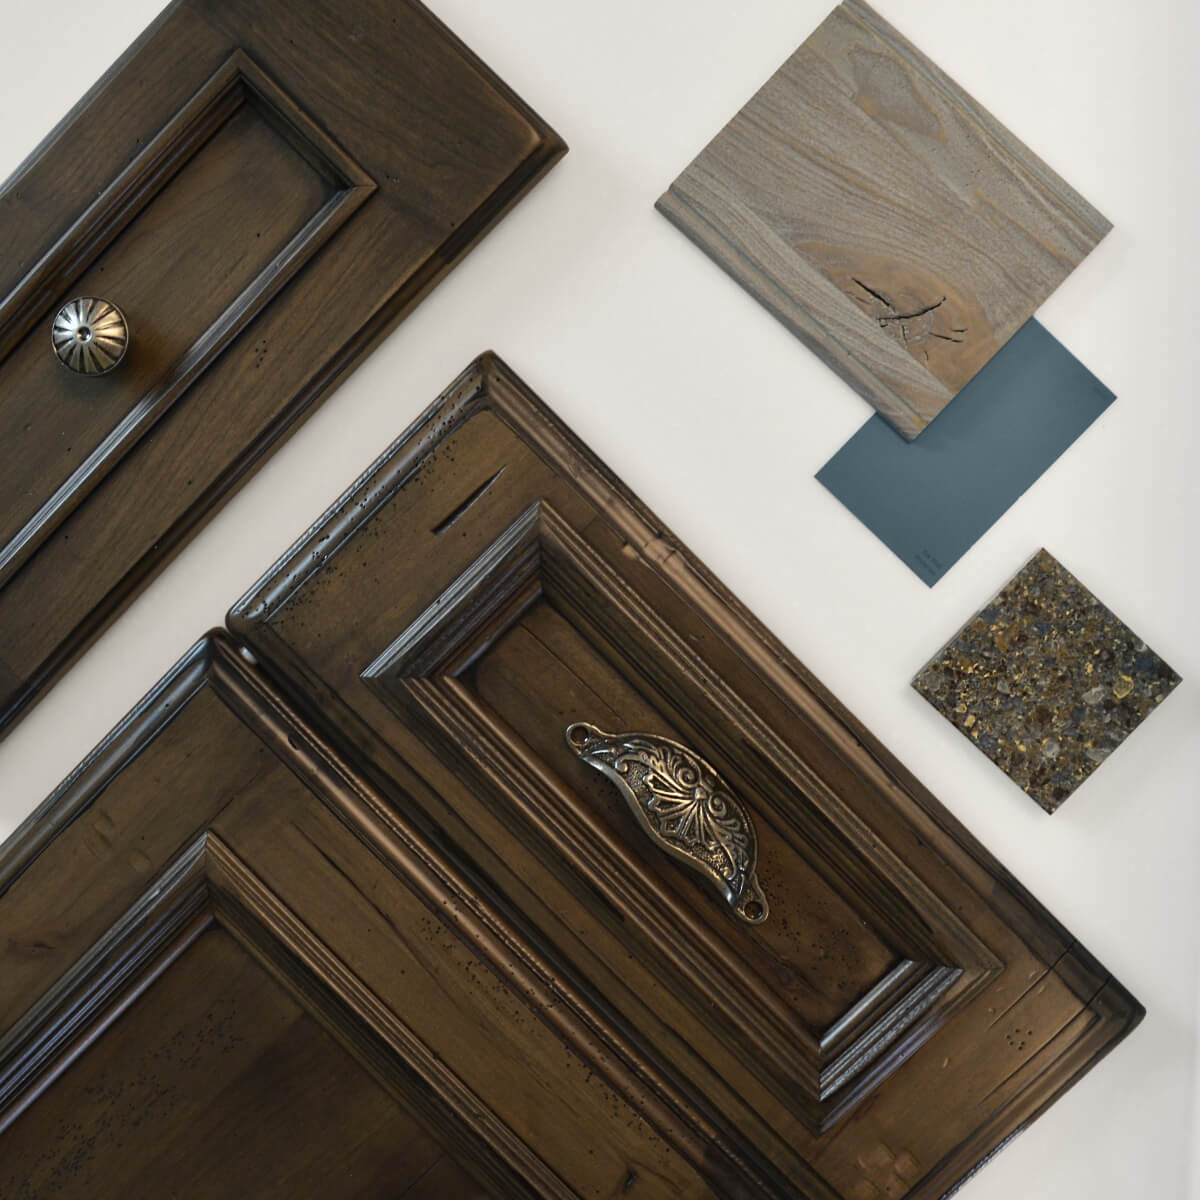 Dura Supreme Cabinetry is shown in the St. Augustine door style and drawer in the Montego door style both in the Heavy Heirloom